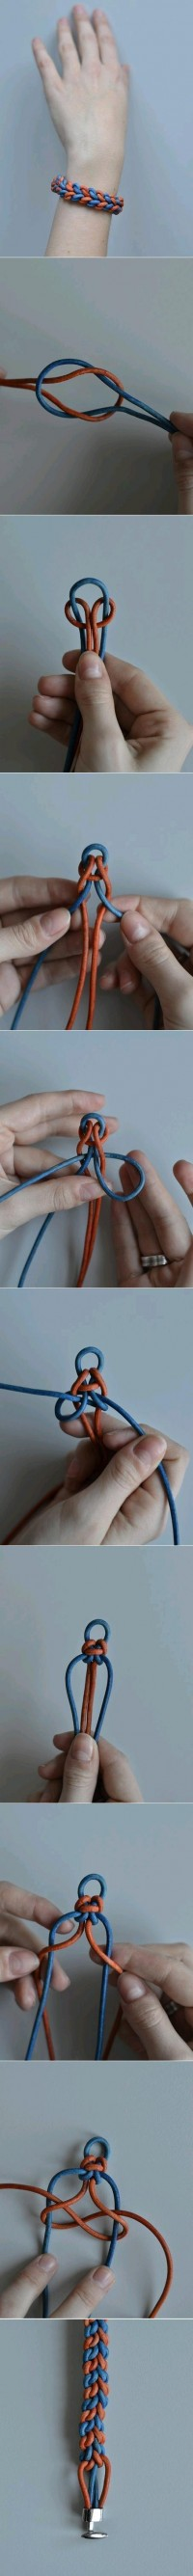 DIY Handmade Bracelet DIY Projects | UsefulDIY.com